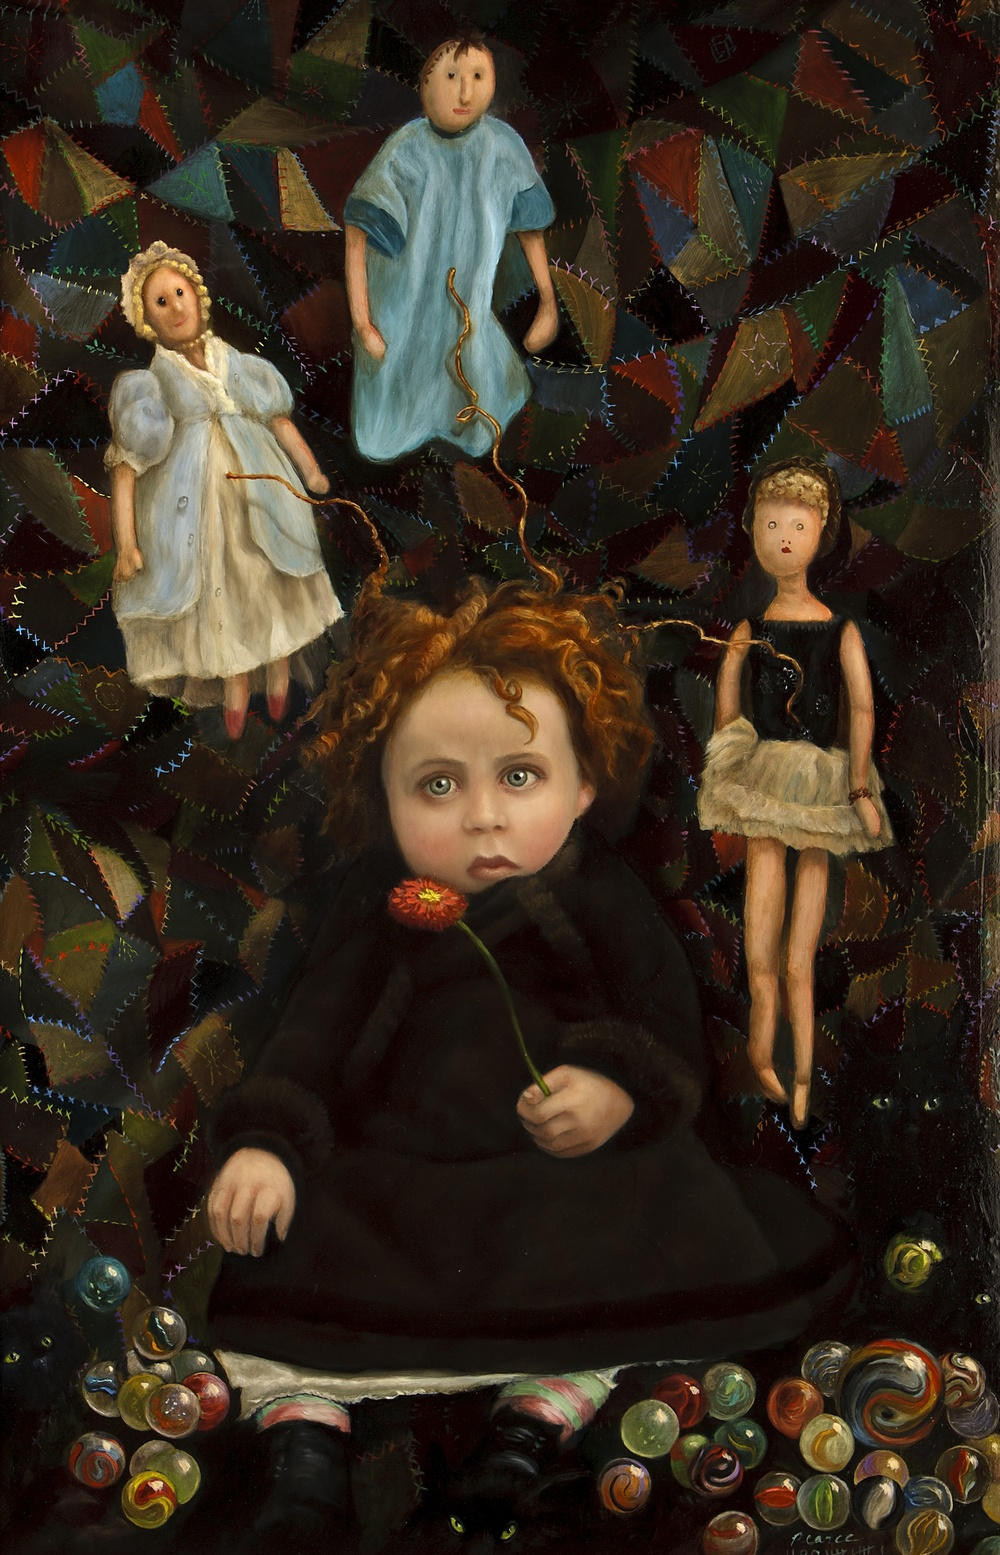 Crazy Mary,  2011, oil on panel, 28 x 22 inches  Sold